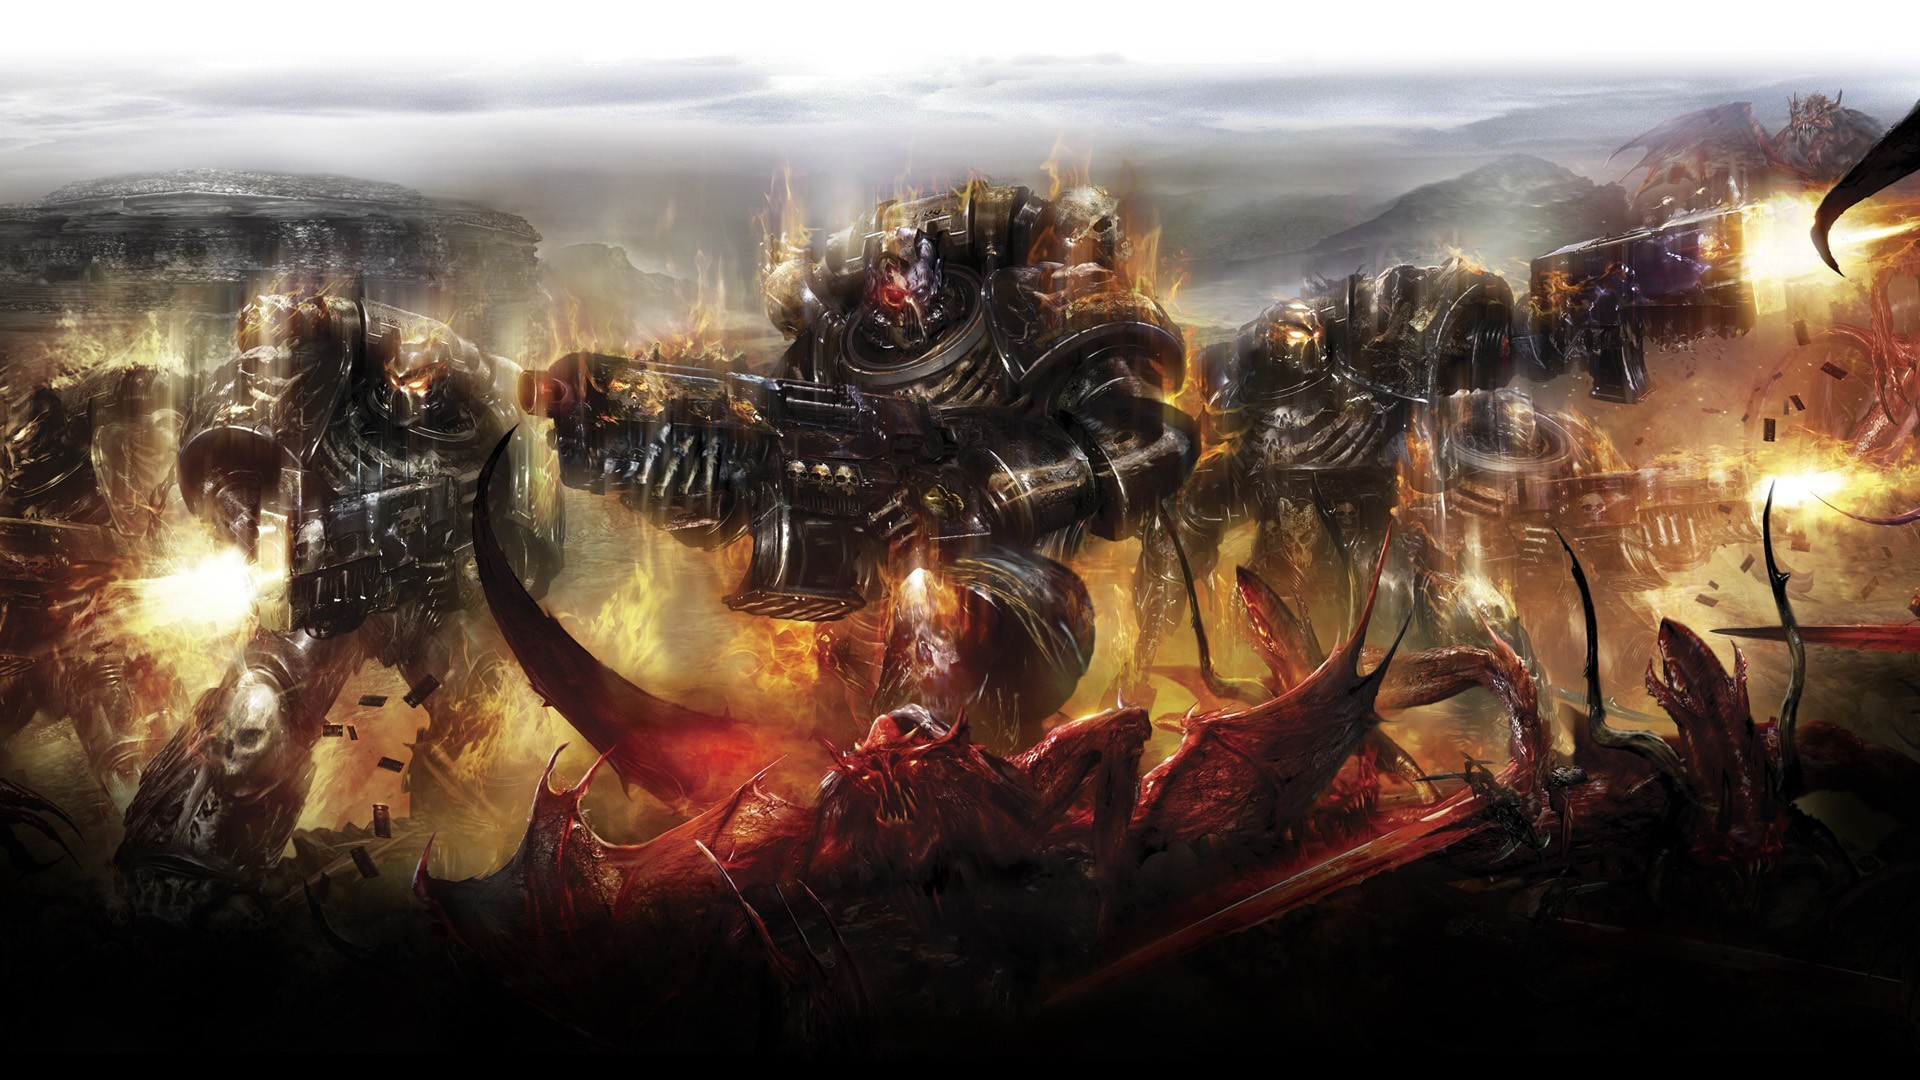 Res: 1920x1080, 40k-chaos-space-marines-wallpaper.jpg